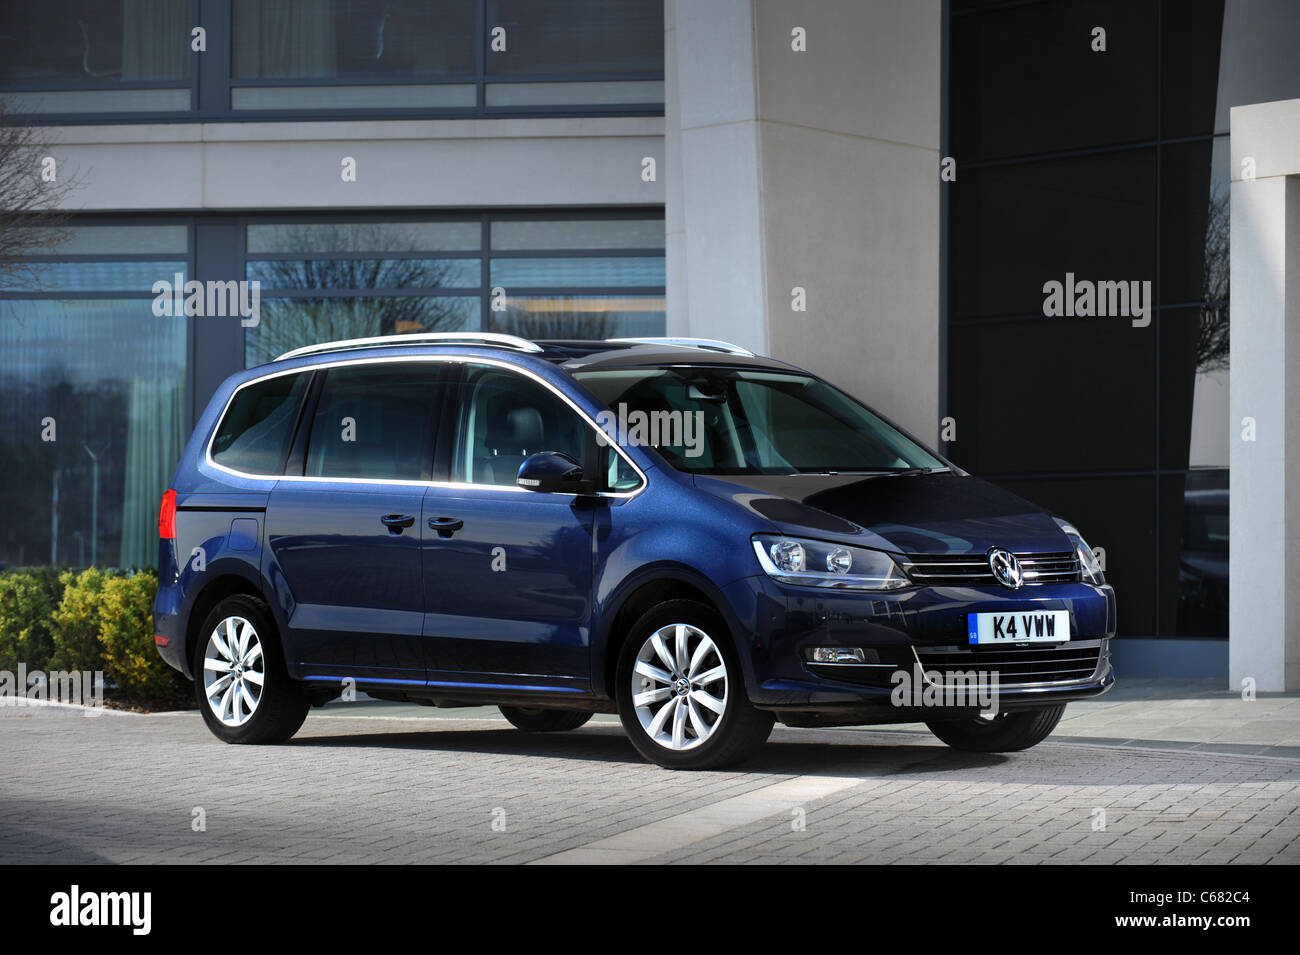 2011 new  shape VVW Volkswagen Sharan 2.0 litre TDI bluemotion UK car RHD - Stock Image